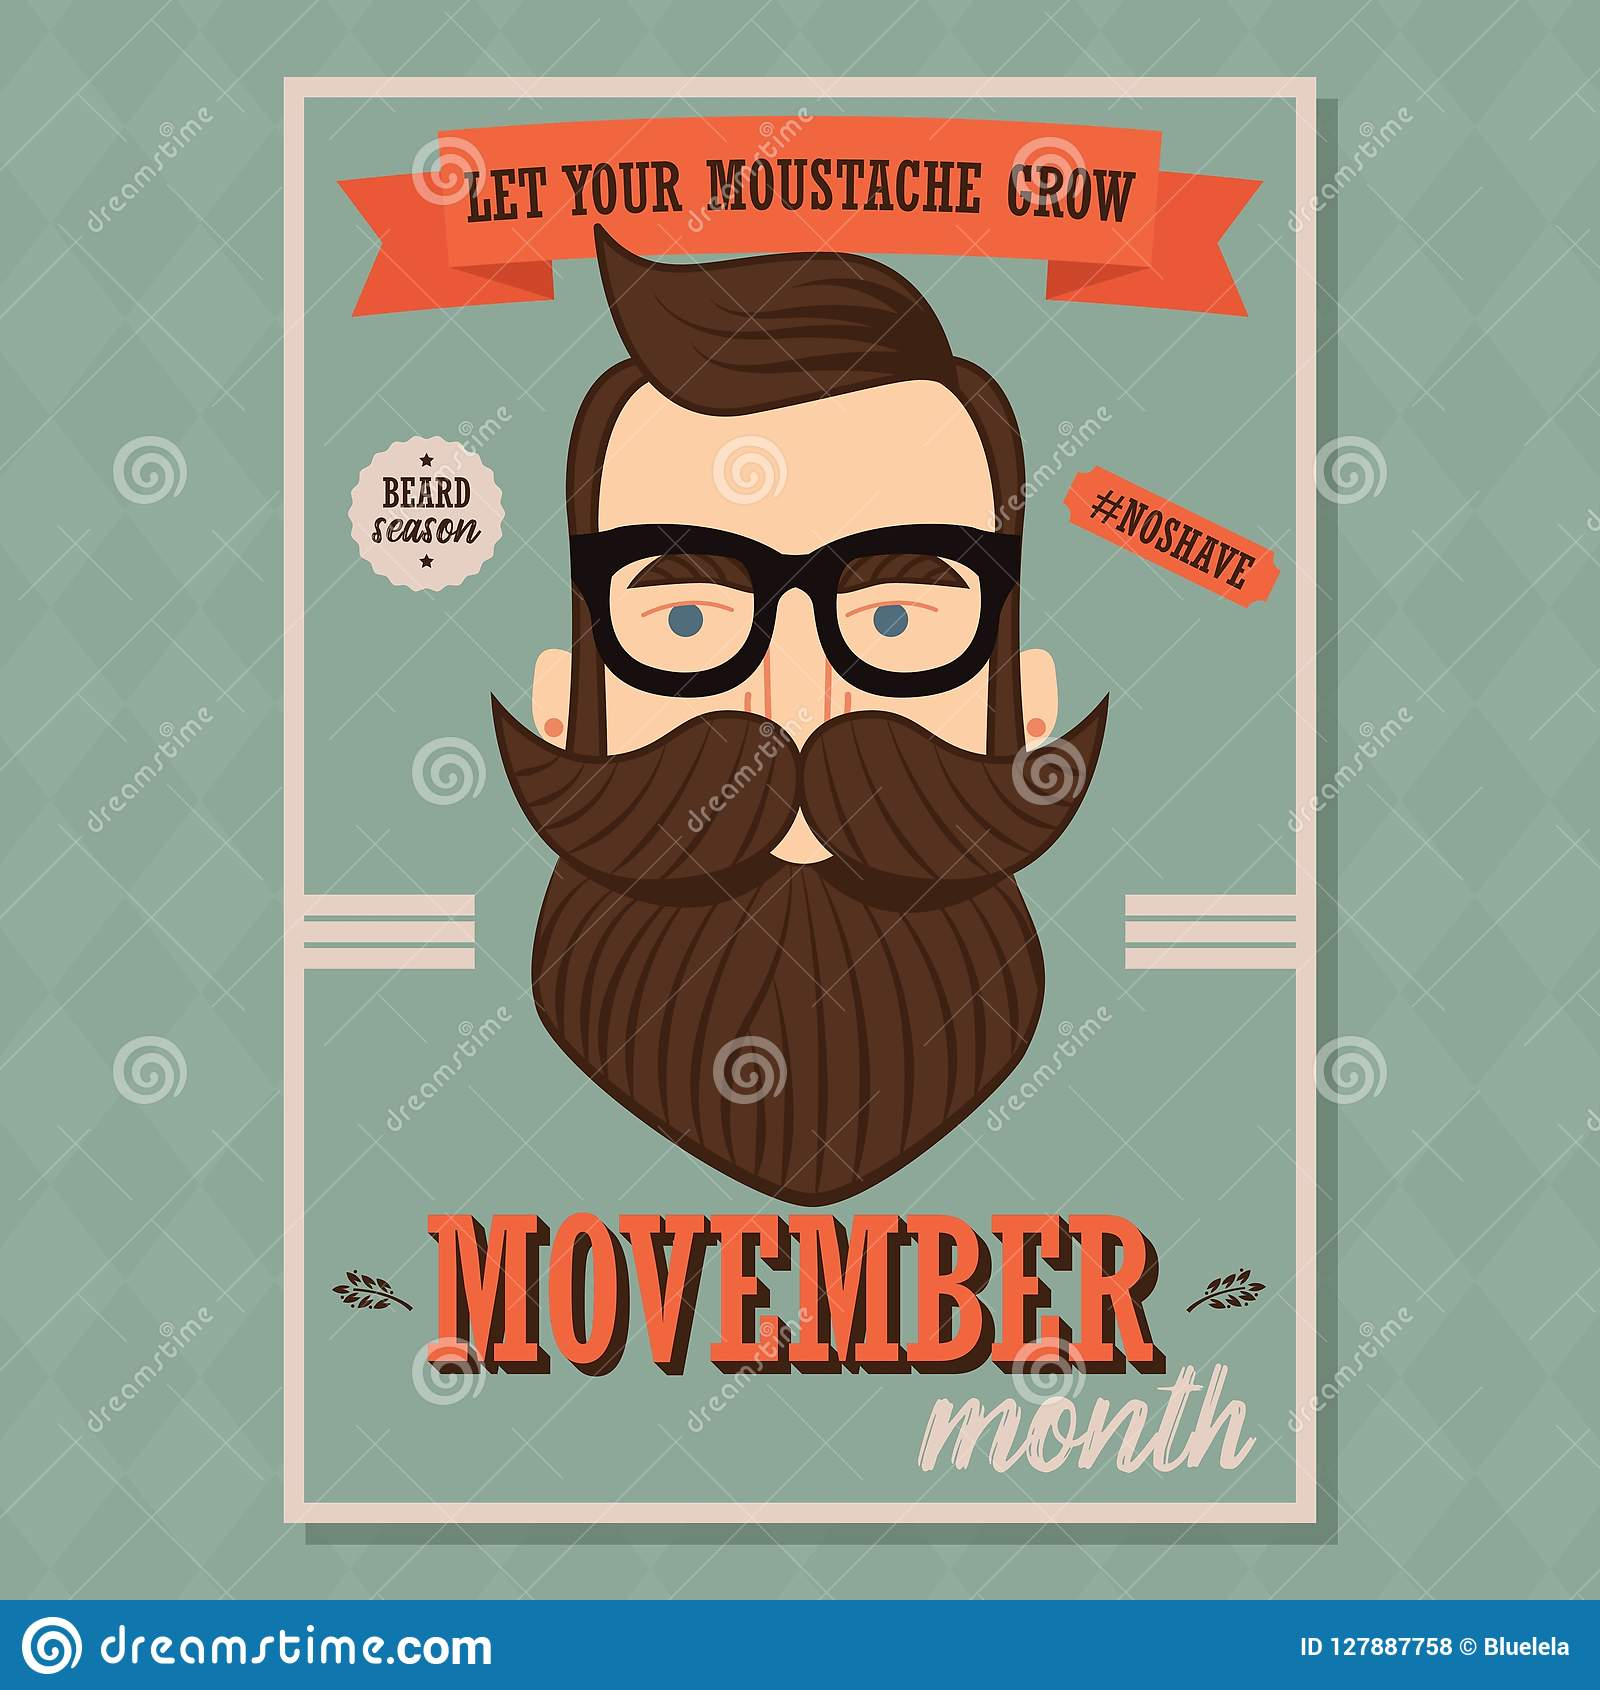 Movember Poster Design. Prostate Cancer Awareness. Hipster Man With Beard And Moustache Stock Vector - Illustration of background. movember: 127887758